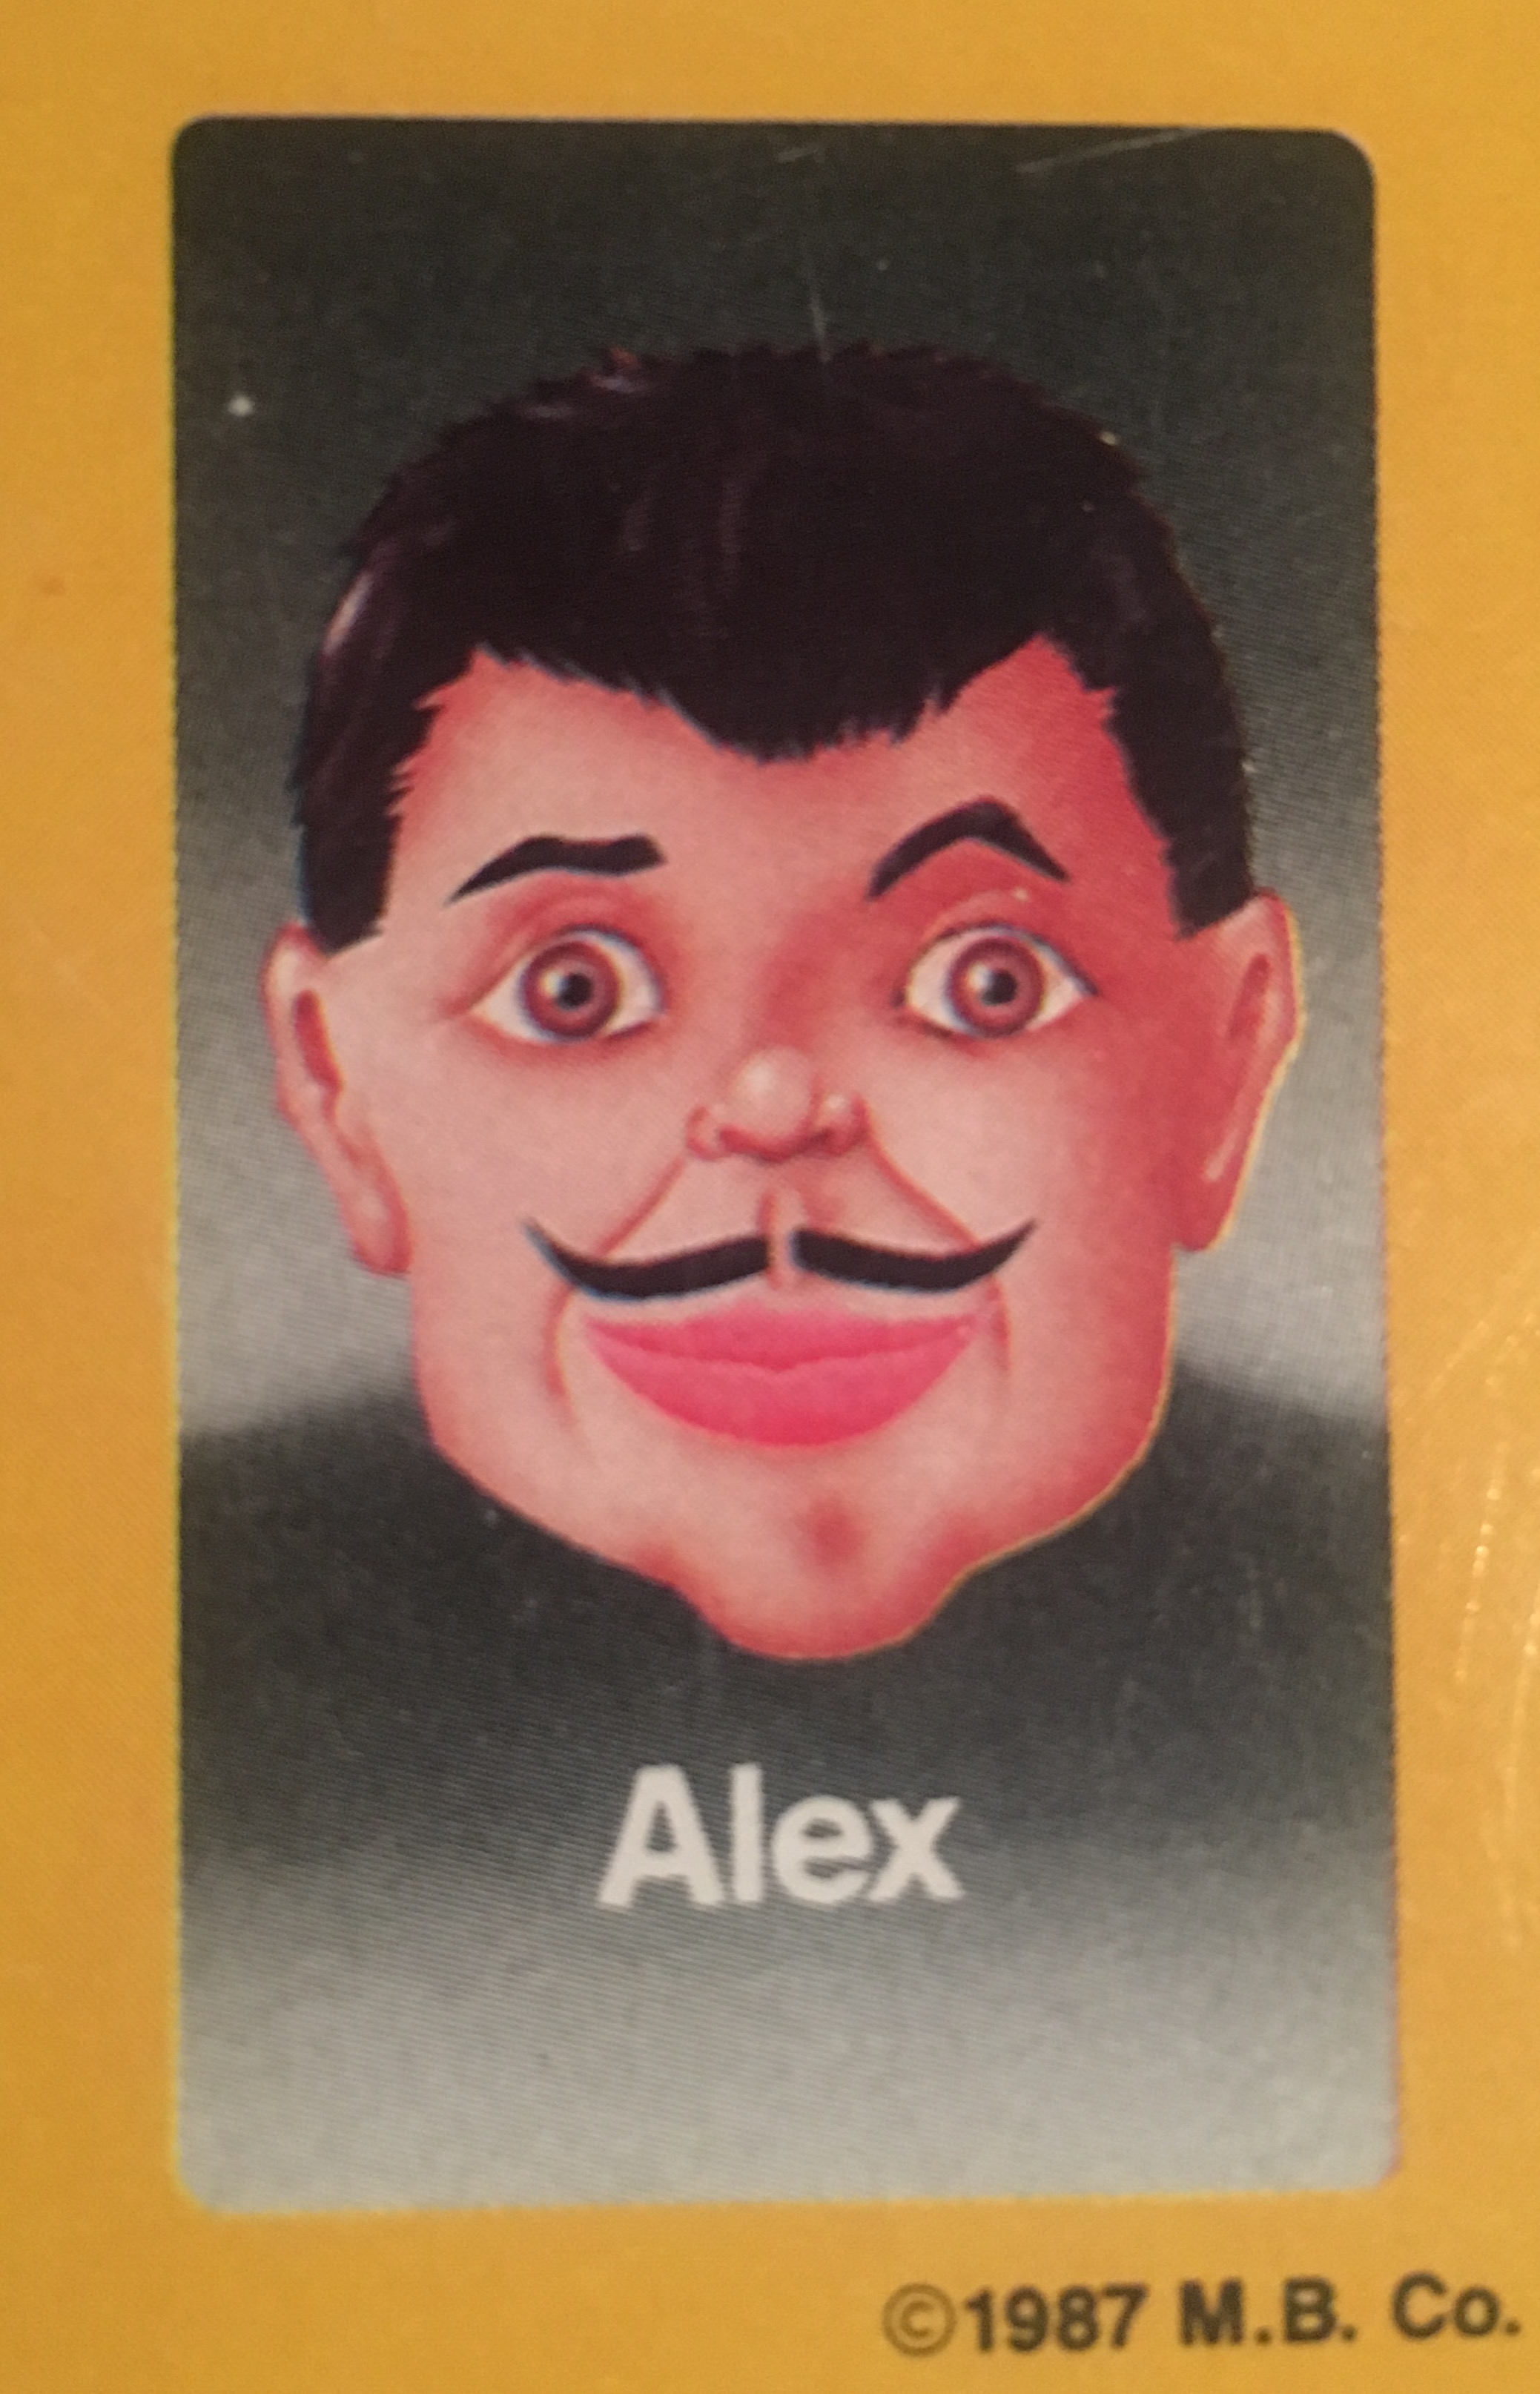 """- Alex was only 25 when his picture was used for Guess Who?®, so investment wasn't at the top of the list after he started receiving millions of dollars in residuals from game sales. After a decade of bottle service, valet parking, and """"making it rain,"""" at the swankiest clubs in Manhattan, he moved back to his small hometown of Alabama, New York with the chunk of change he had left. He settled down there with the high school prom queen from two years before his return. They are still happily married, with 12 healthy children."""